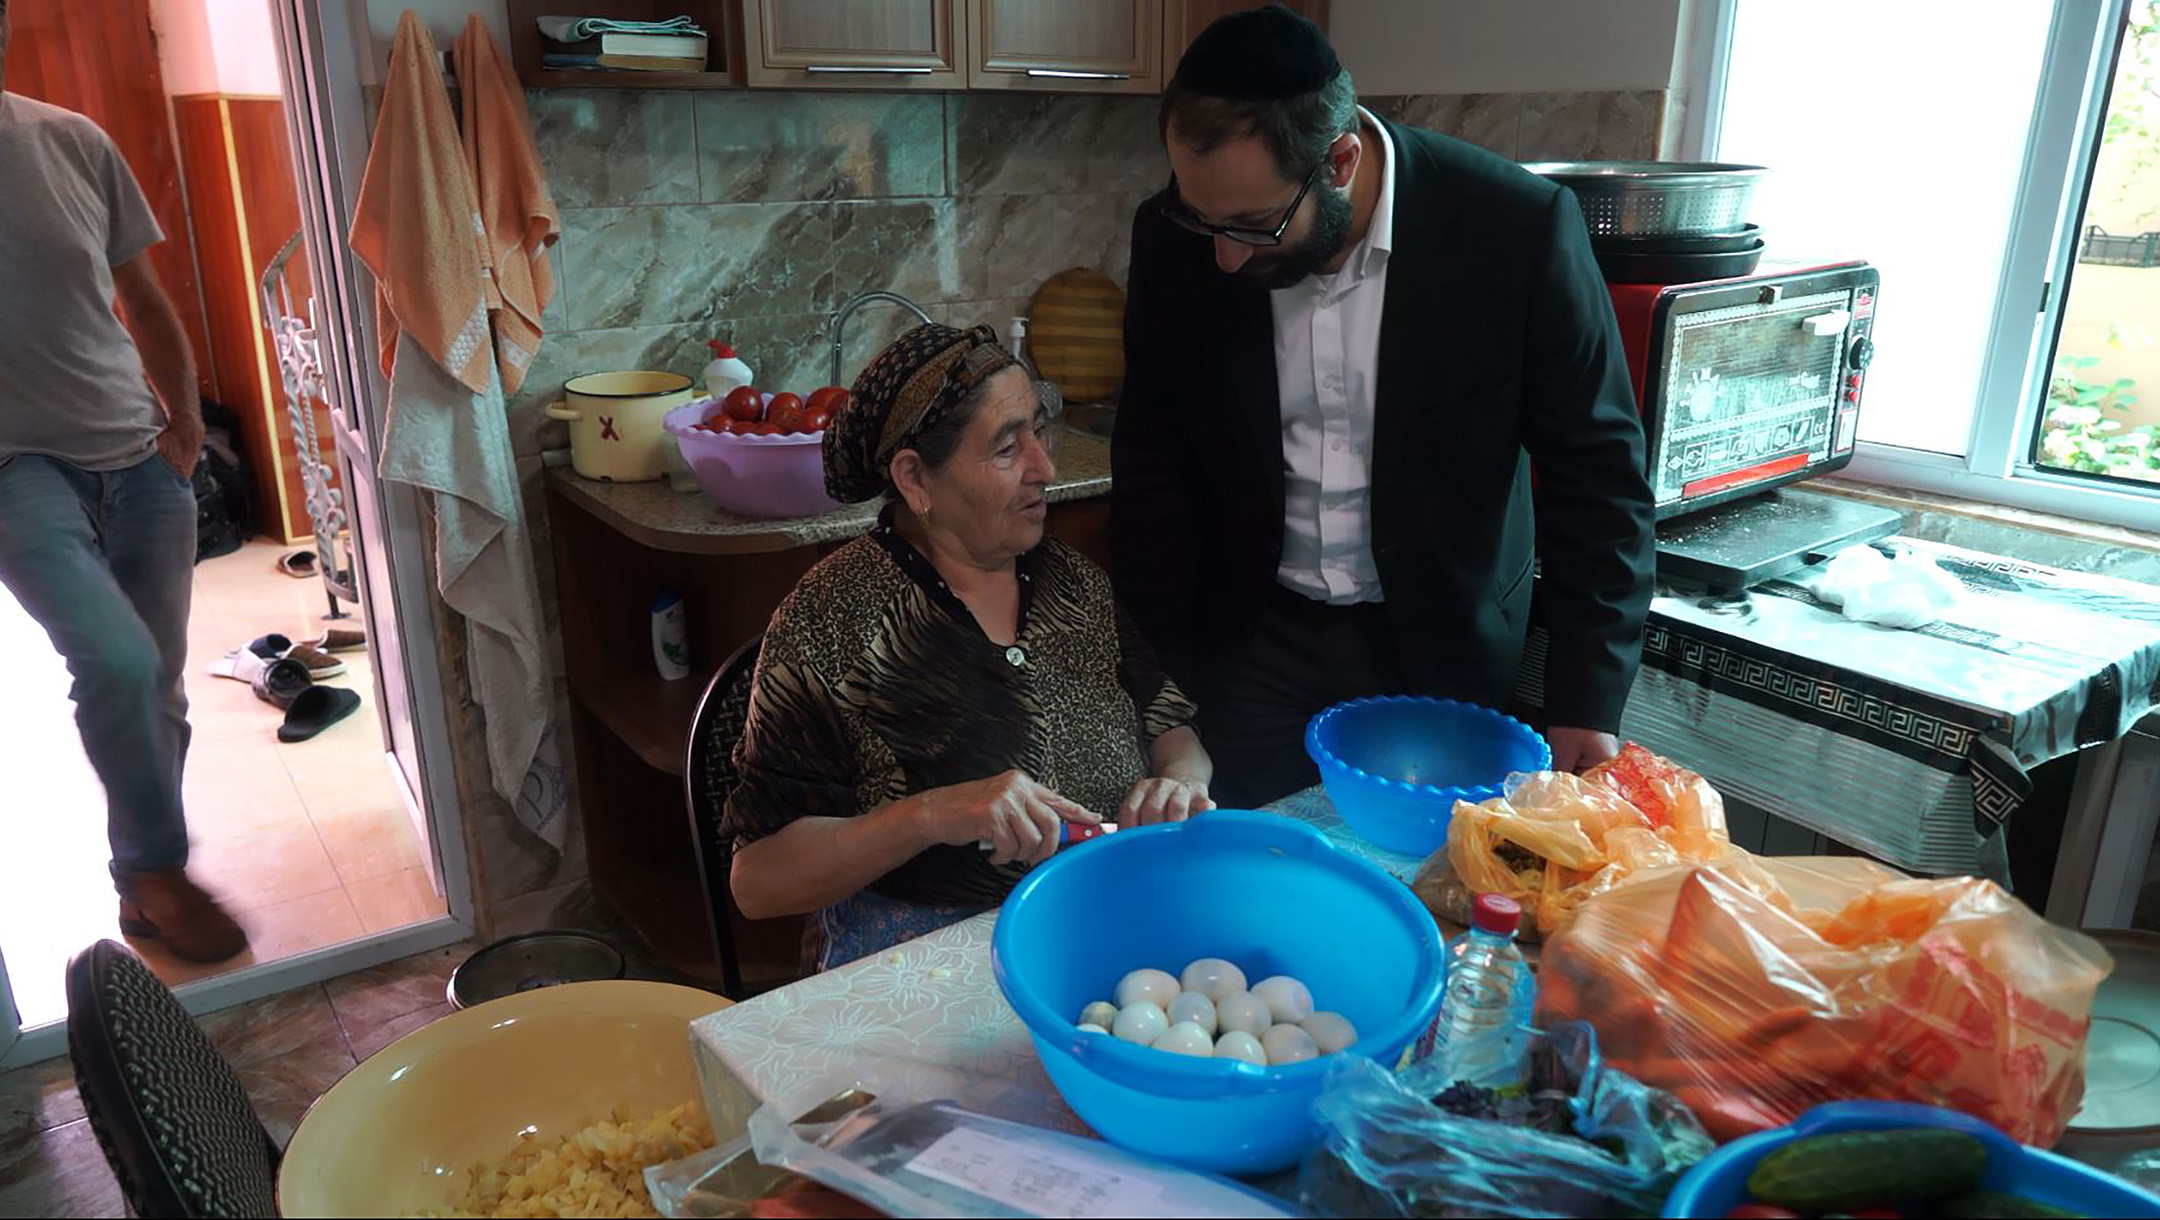 Zoya Avadayev discusses cooking Jewish dishes with Rabbi Tsadok Ashurov Krasnaiya Sloboda, Azerbaijan on July 21, 2018. (Cnaan Liphshiz)